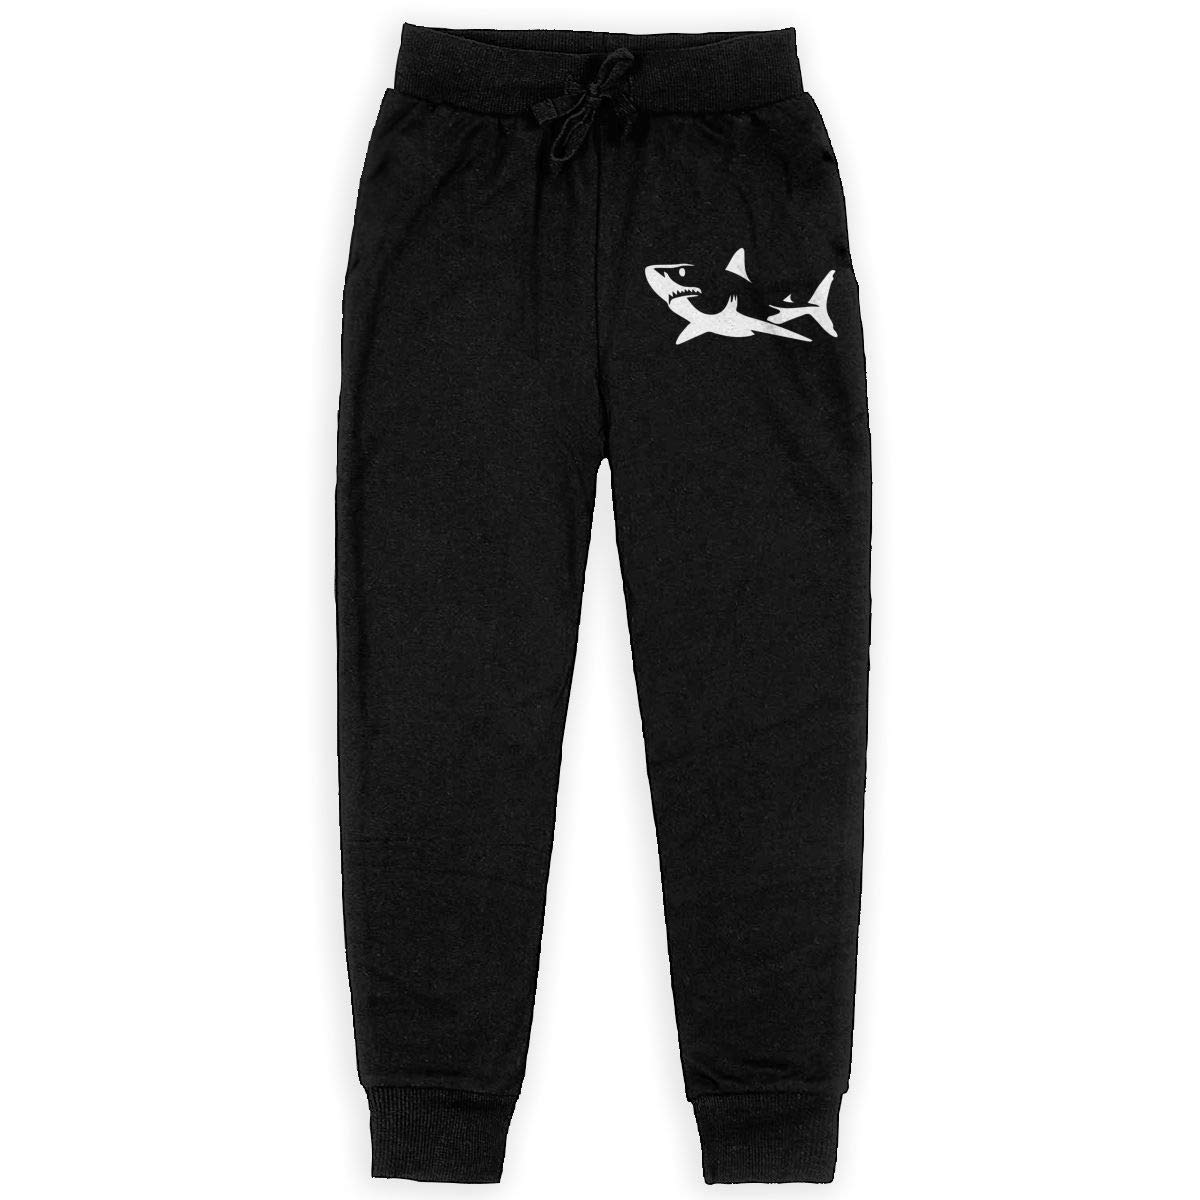 Boys Sweatpants Shark Active Jogger Pants